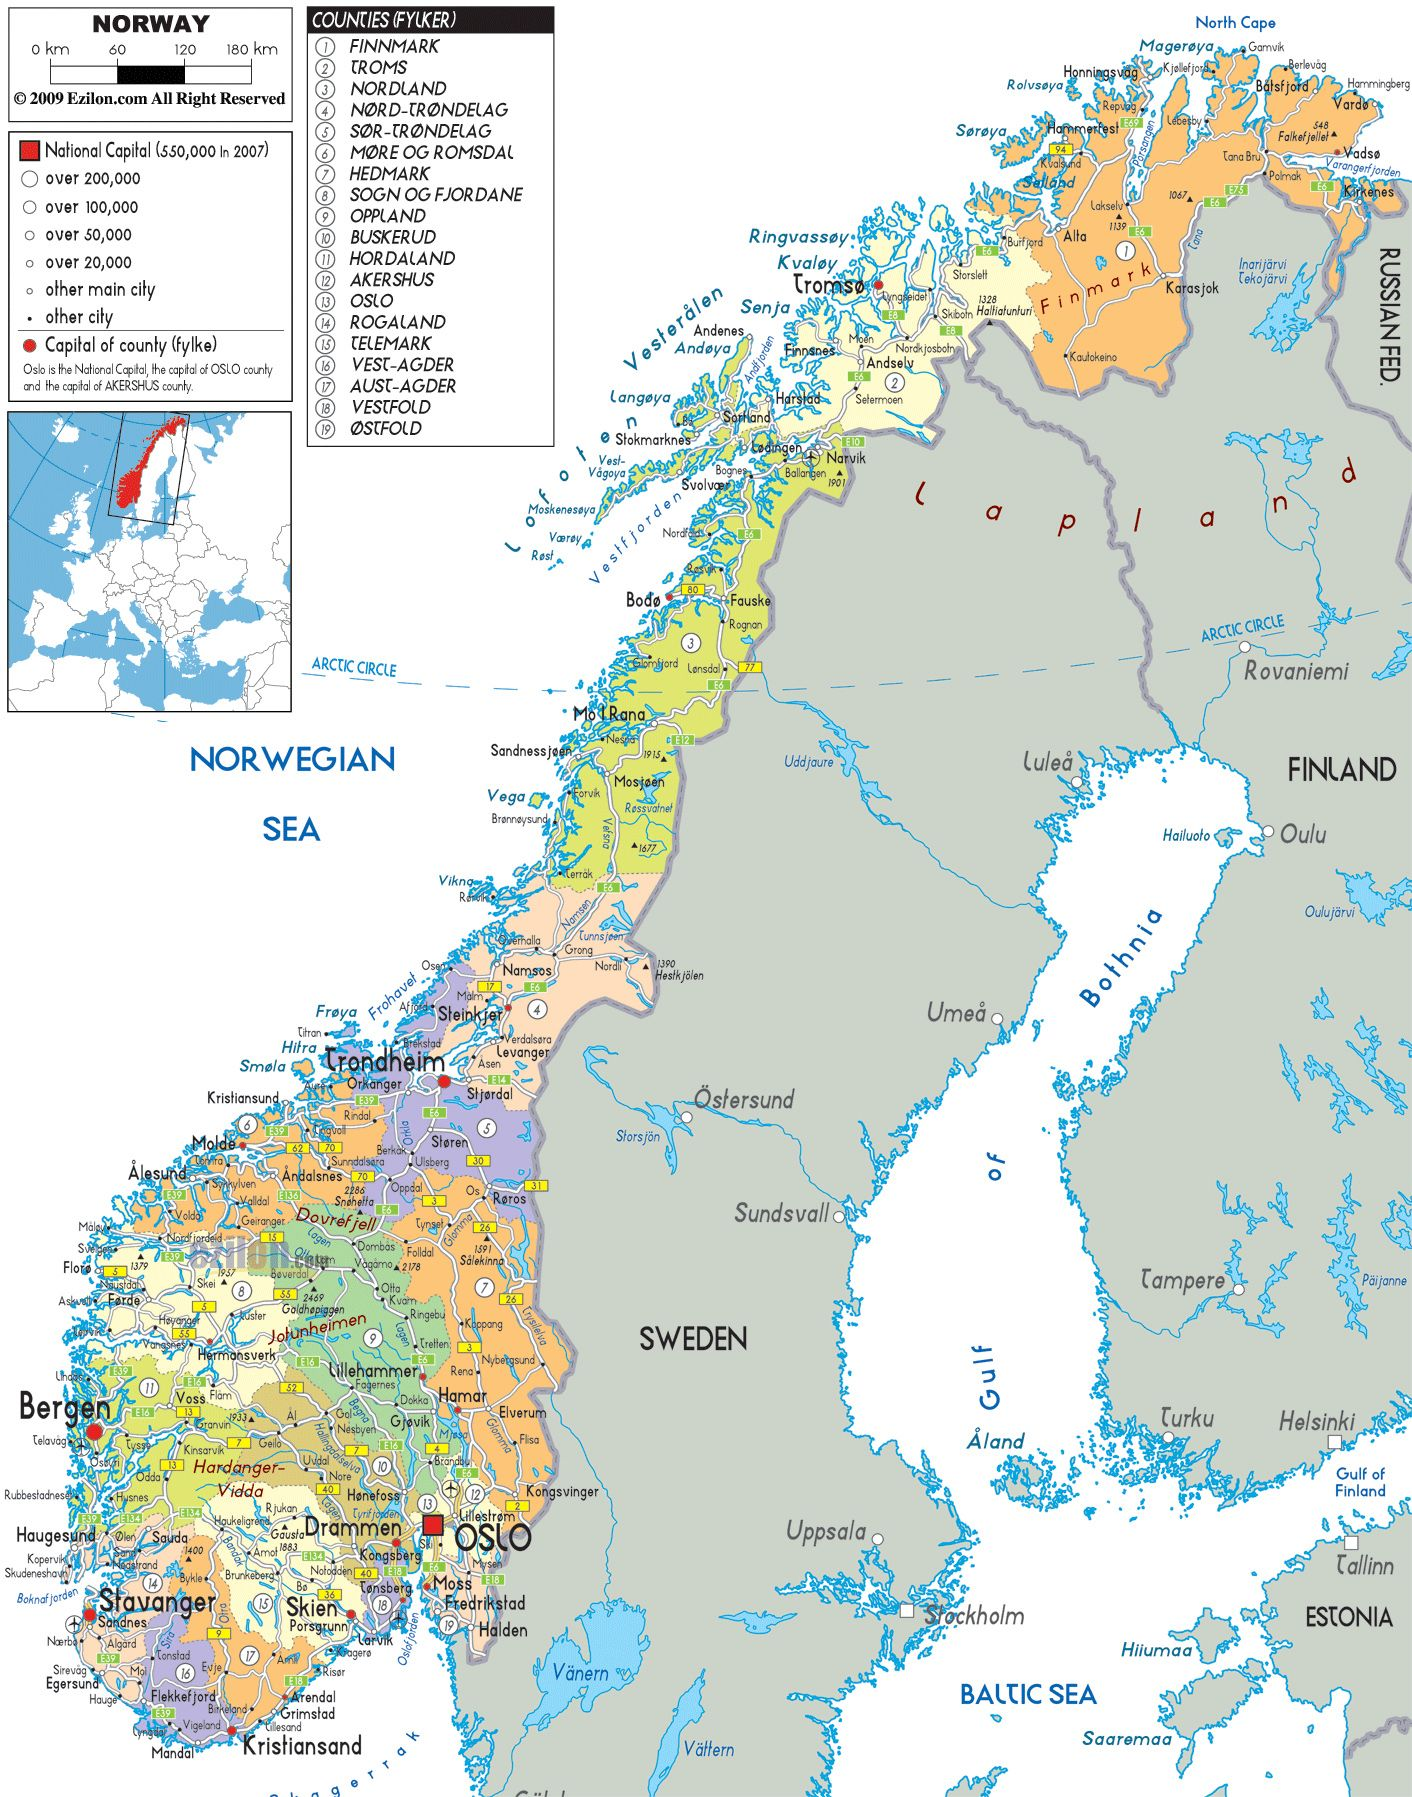 detailed-political-and-administrative-map-of-norway-with-all-roads-cities-and-airports.jpg (1412×1797)